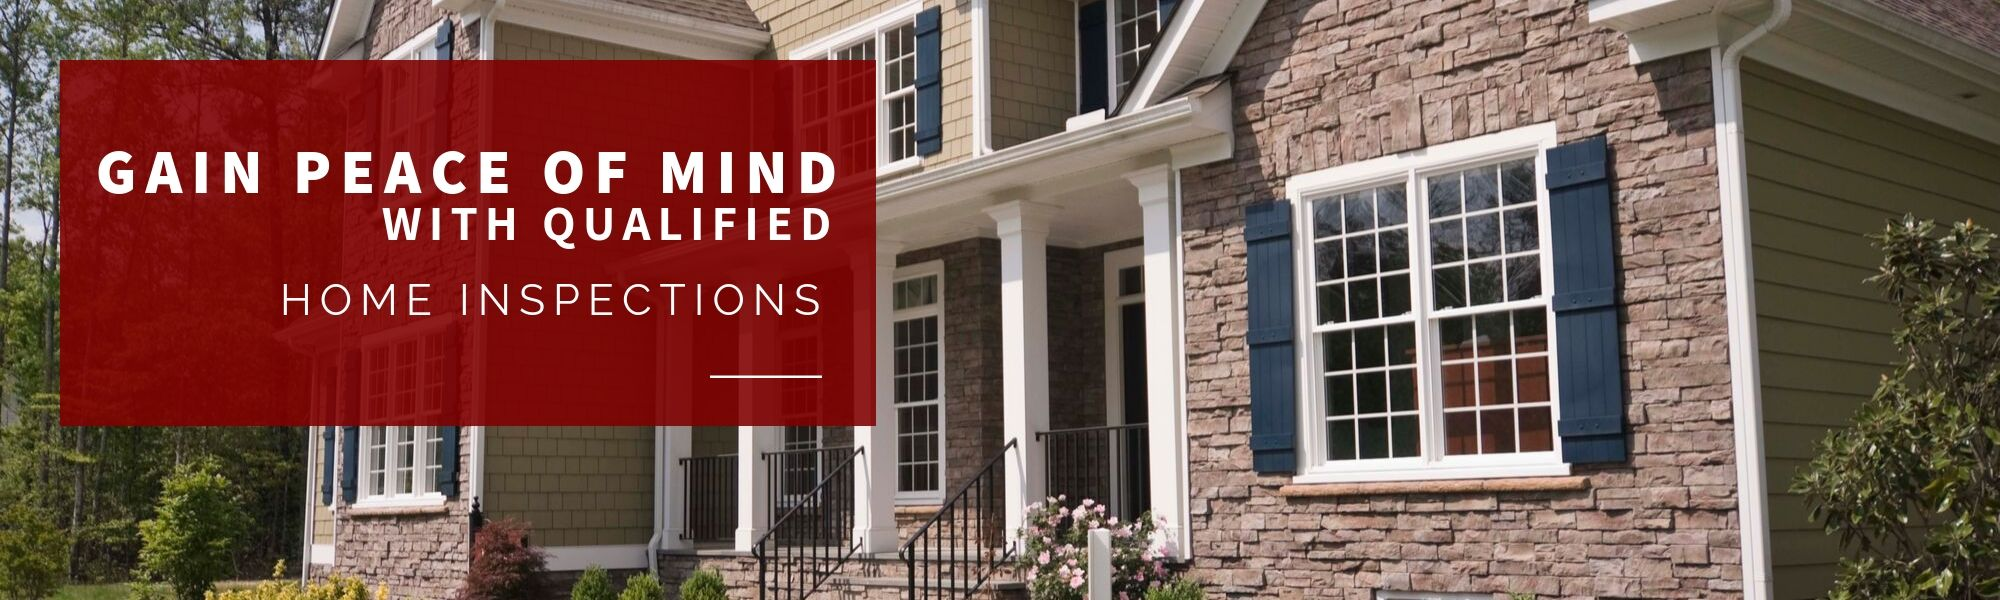 Get peace of mind with home inspections